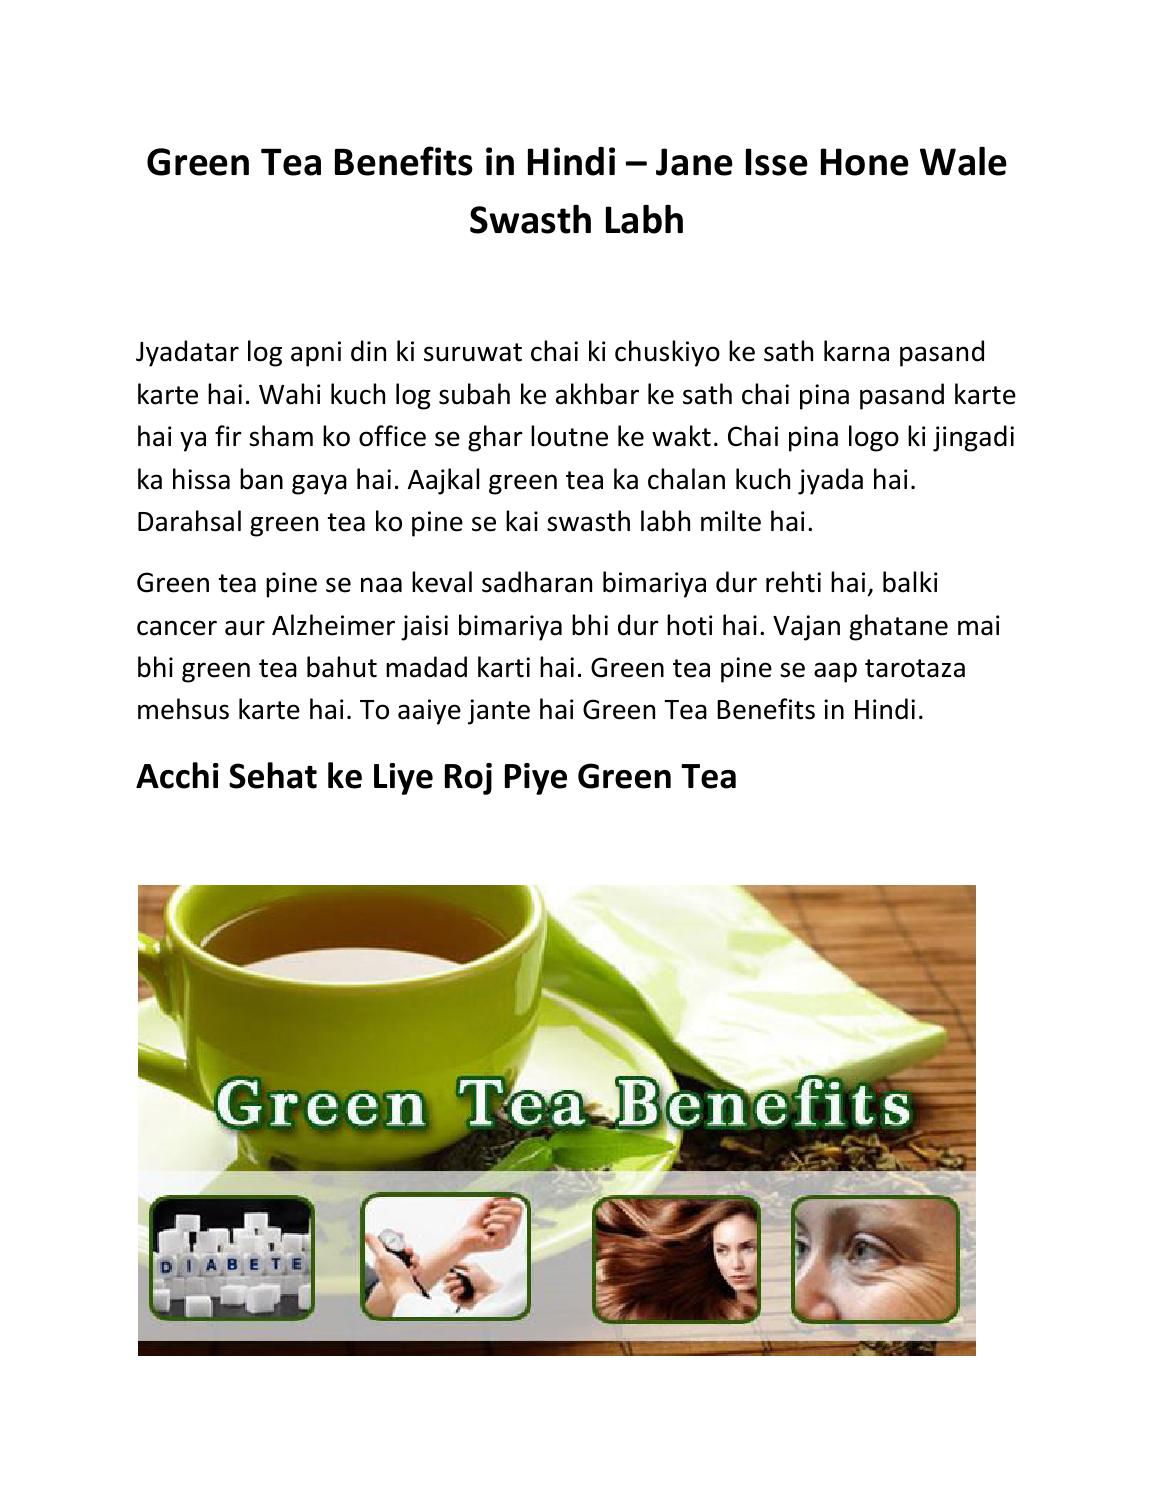 Green Tea Benefits In Hindi Se Rakhiye Achhi Sehat By Shradhha  # Catalogue Bahut